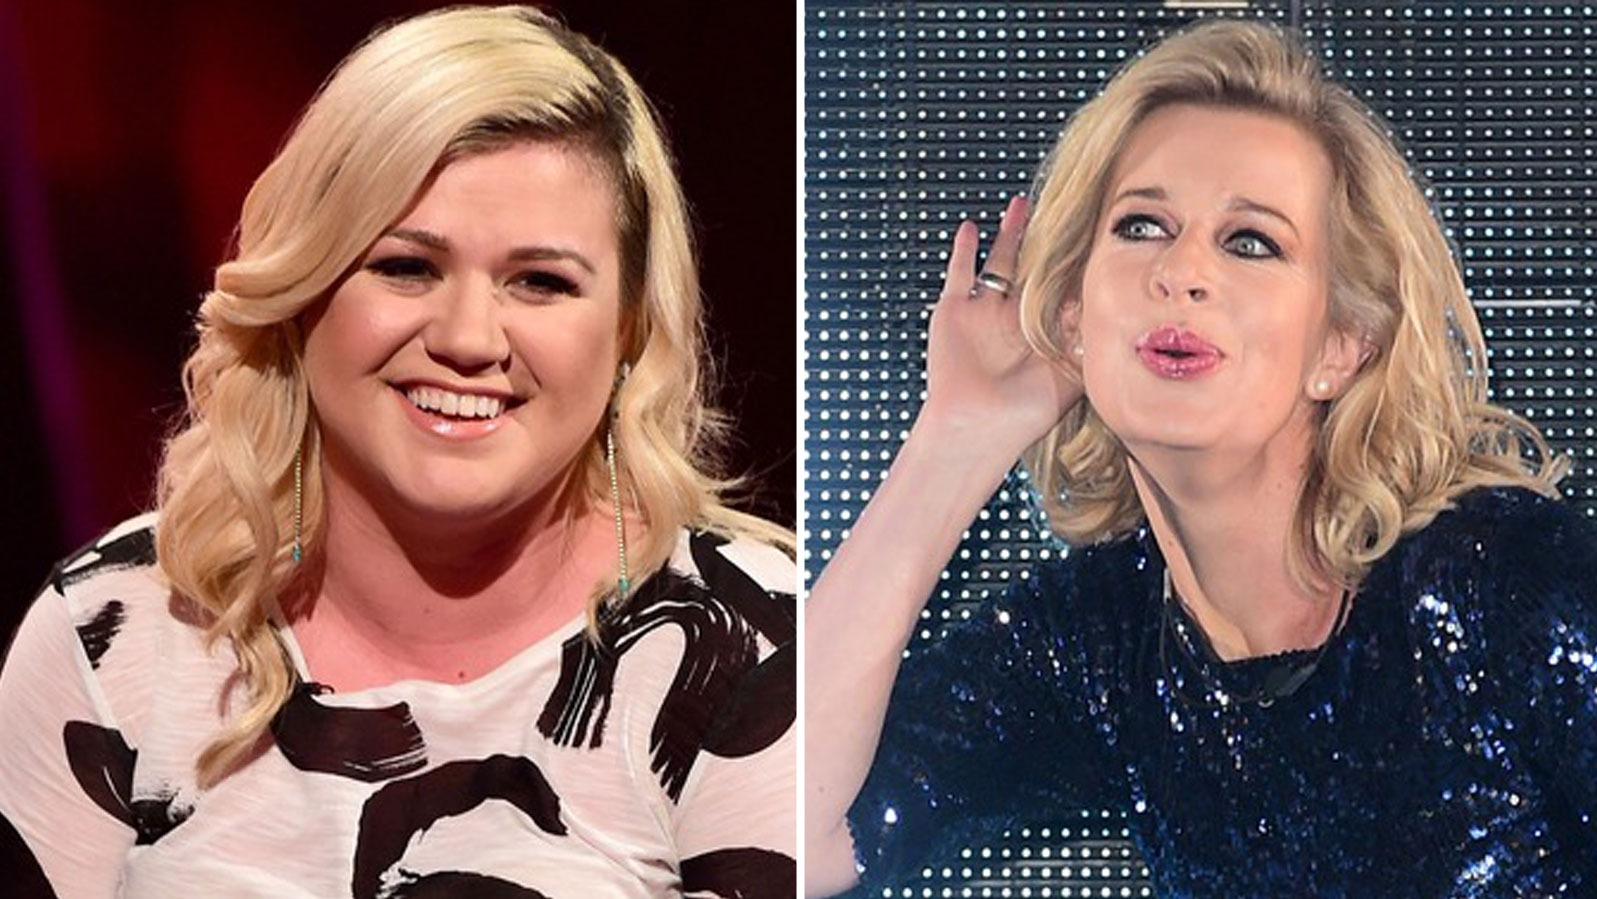 Kelly Clarkson Says I M Awesome After Katie Hopkins Fat Jibes Itv News